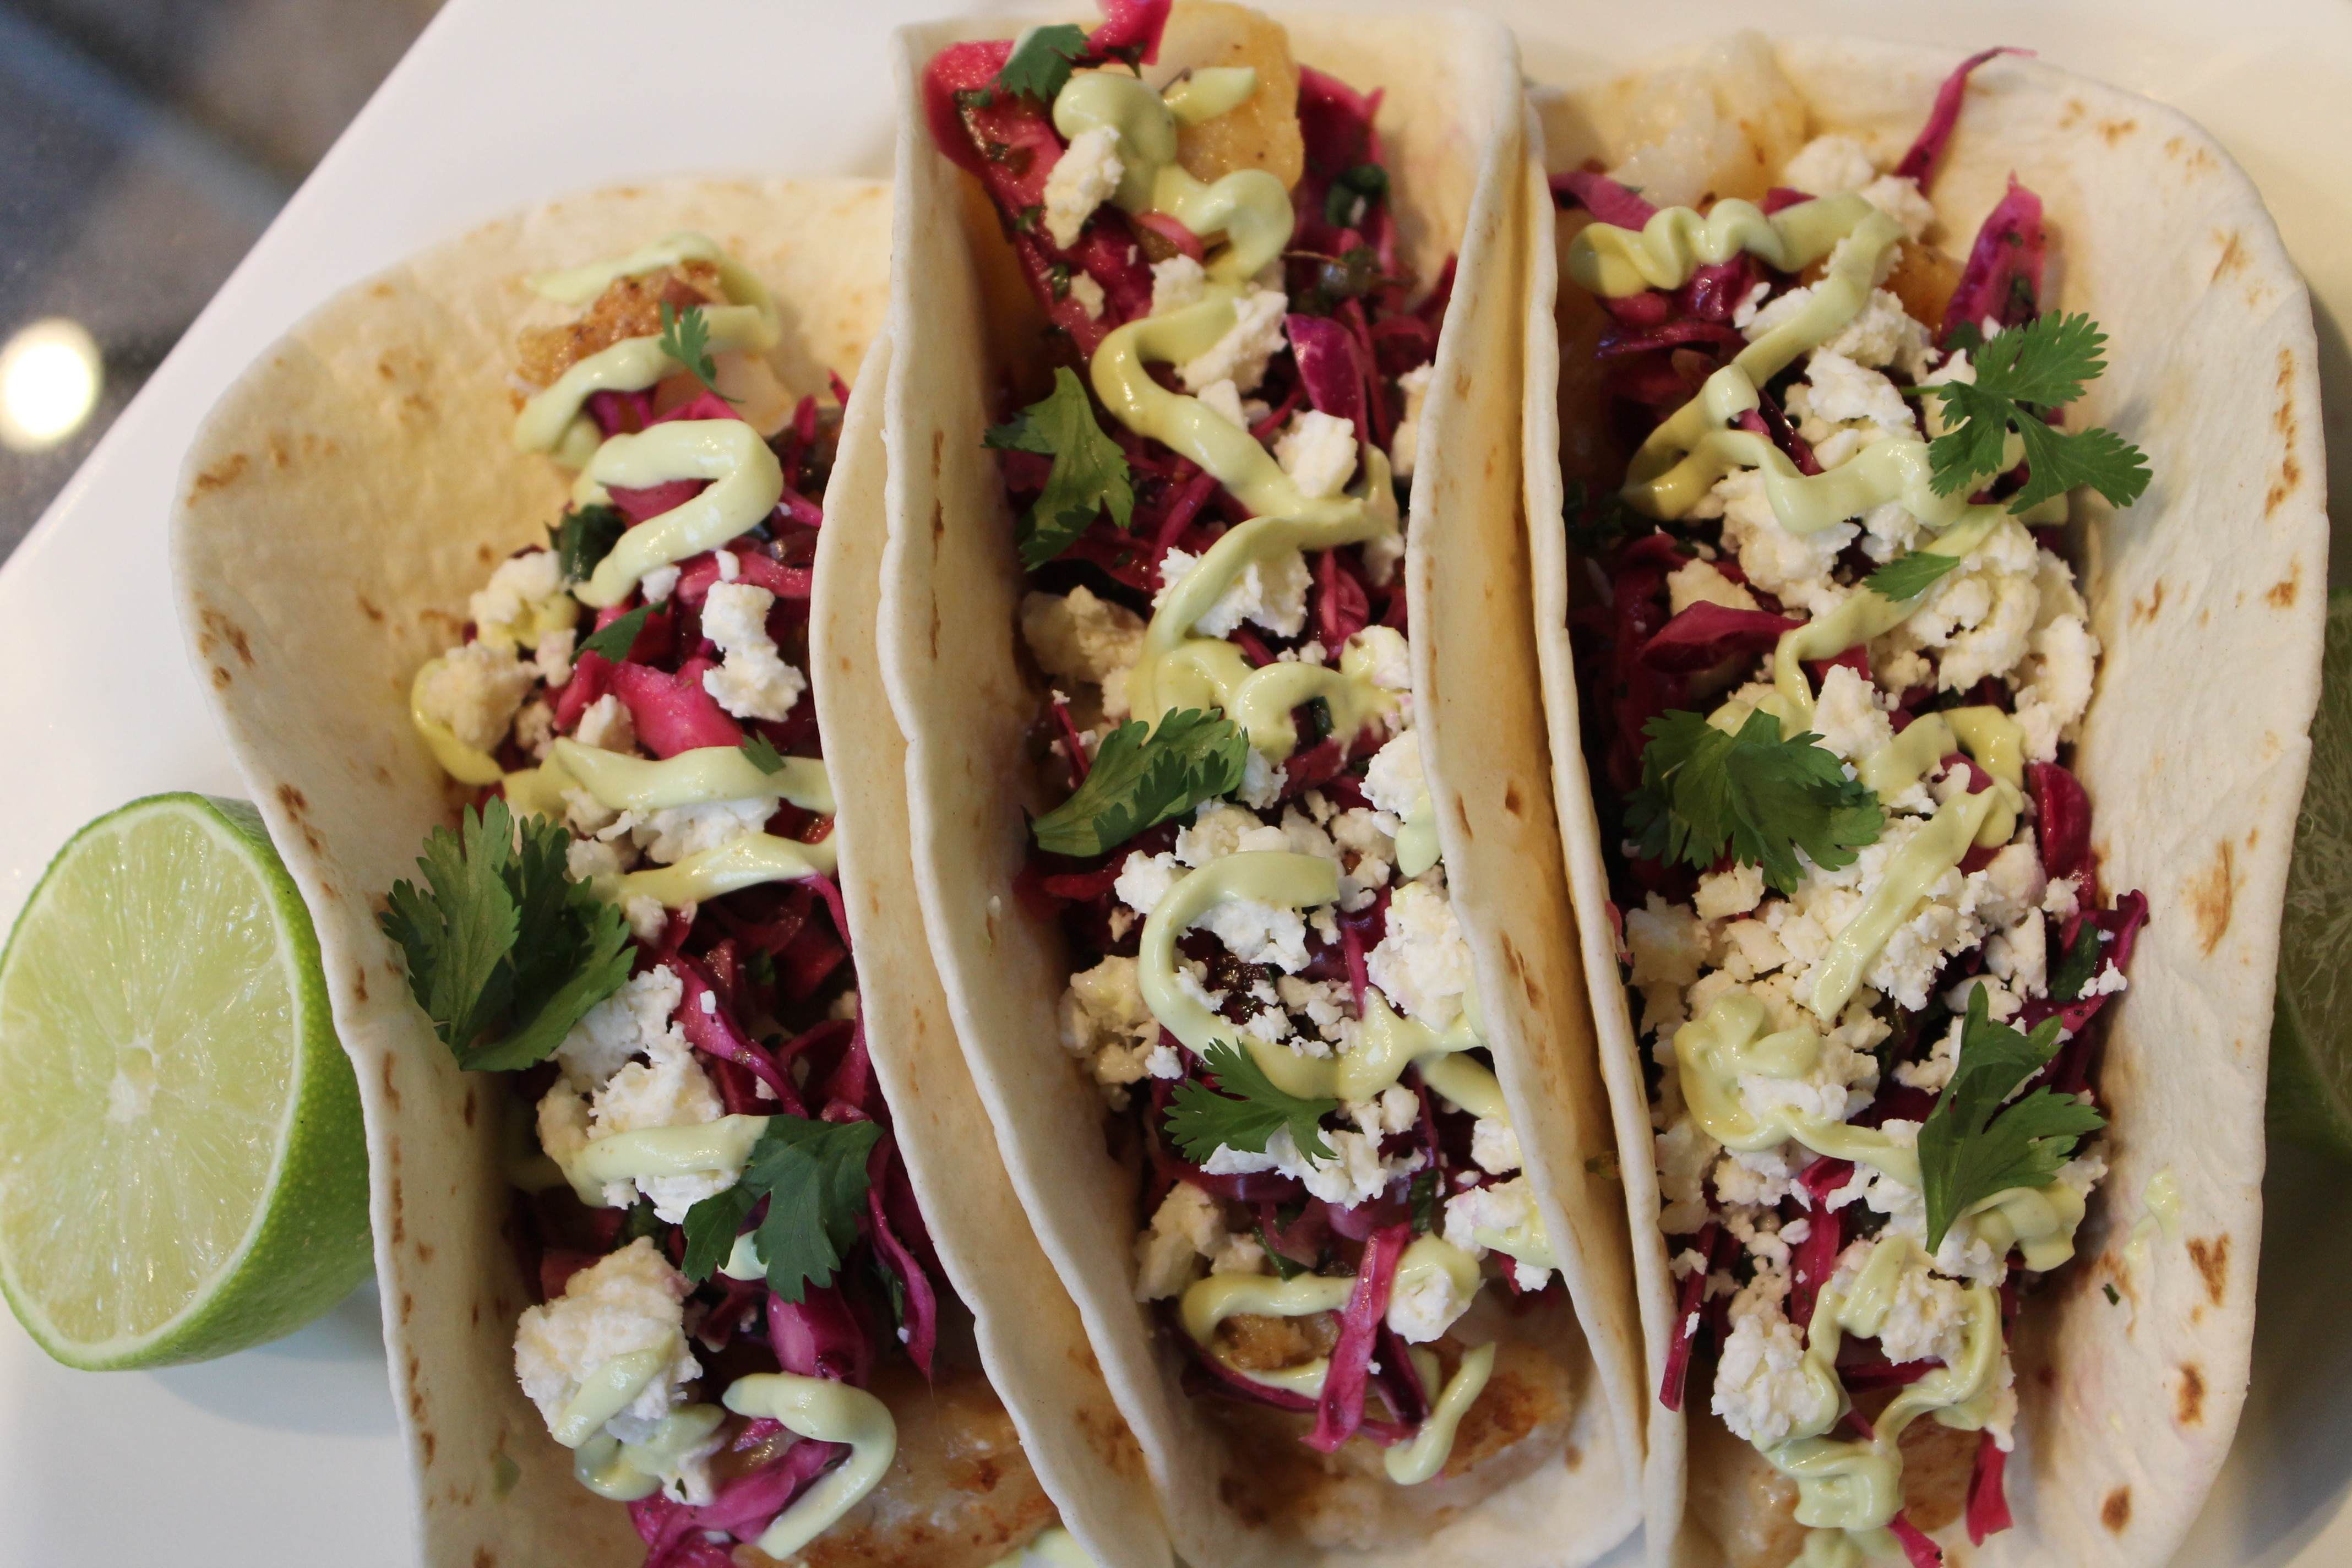 Beer battered fish tacos with cilantro lime red cabbage for Fish taco red cabbage slaw